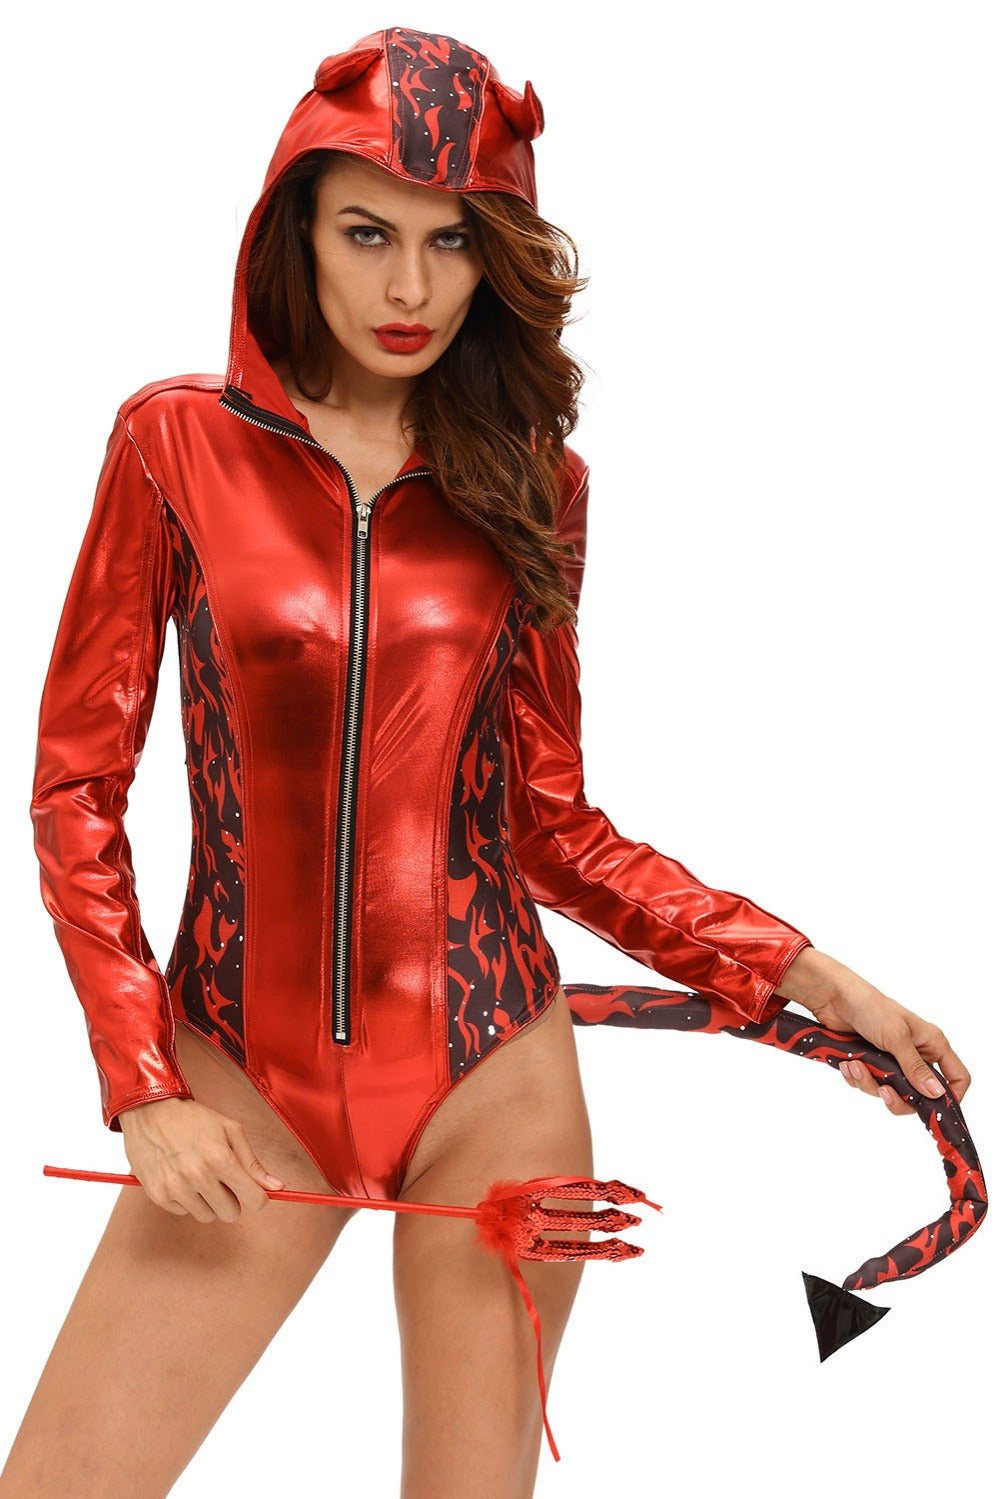 Halloween Cosplay 2016 Hotting Sexual Red Hot Devilish Hooded Romper Costume LC89015 Halloween Cosplay Fantasia Adult